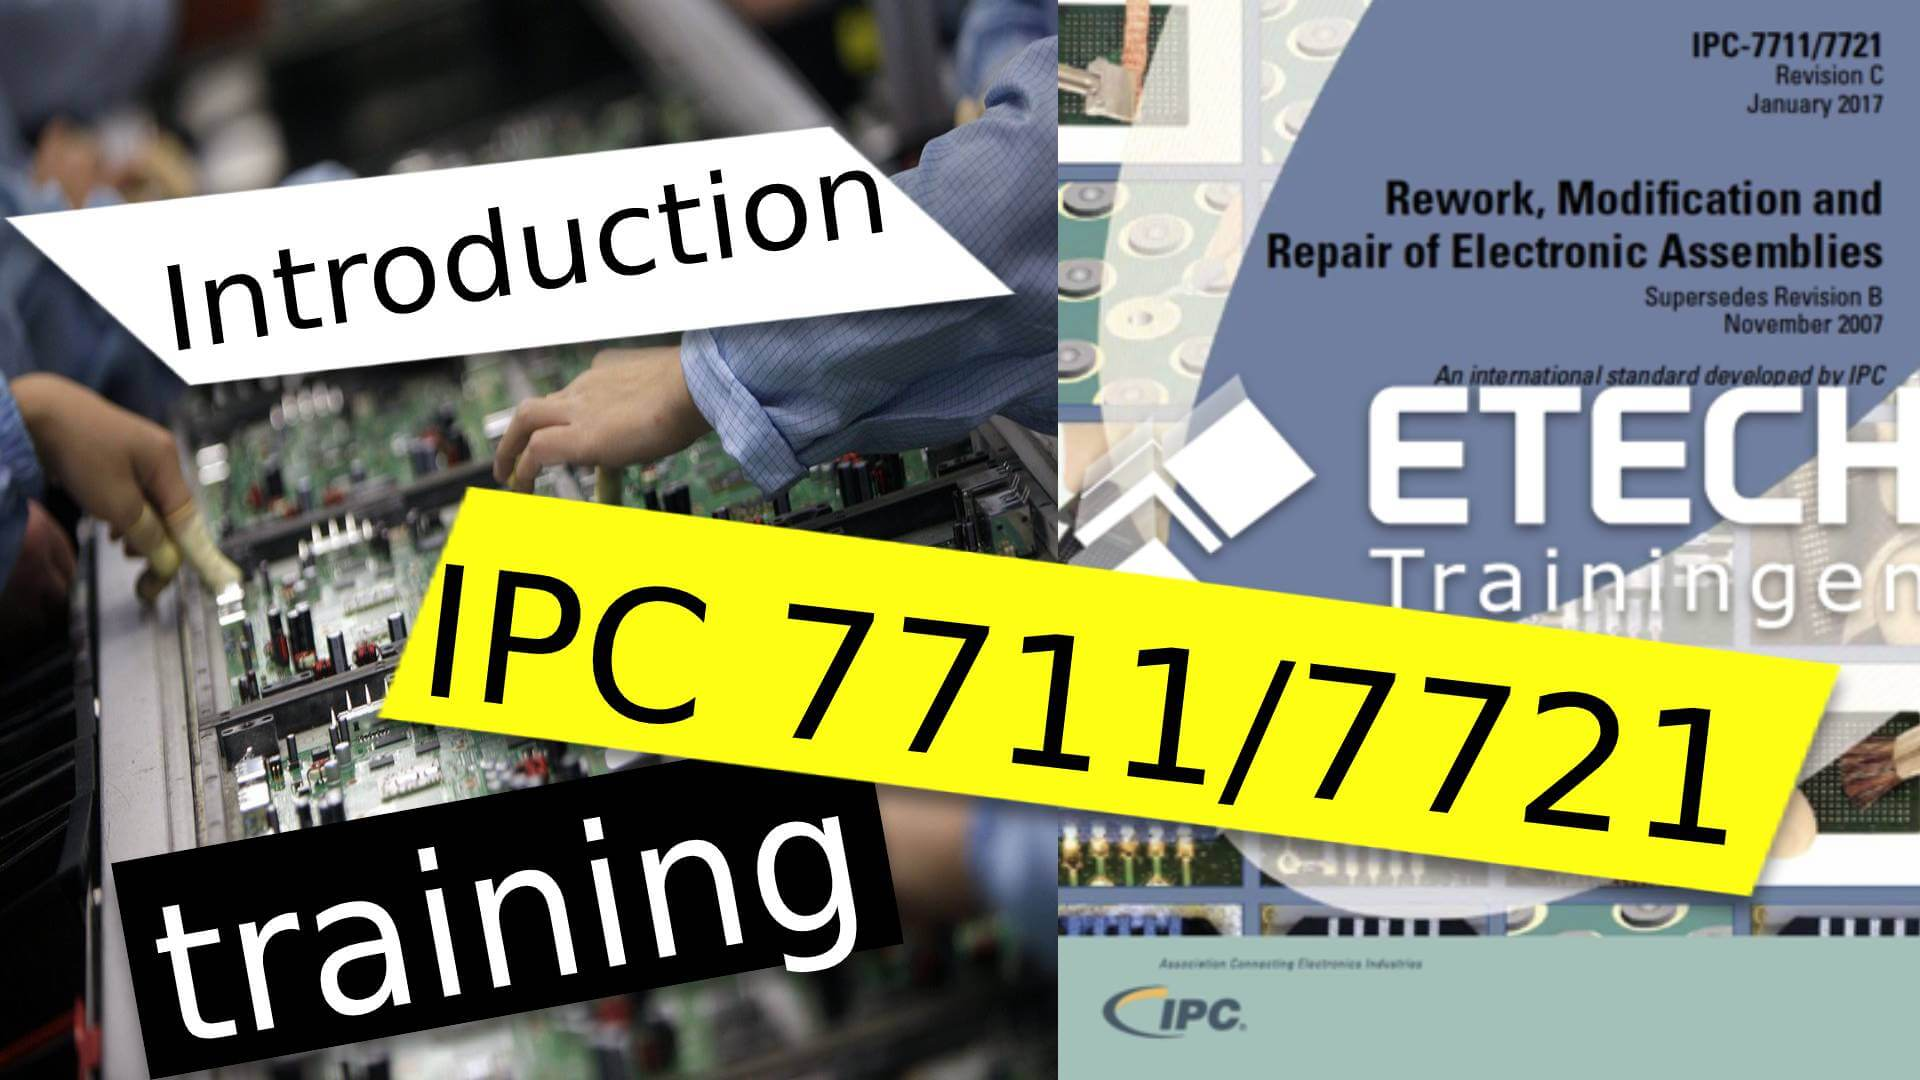 RECERTIFICATION IPC 7711/7721 CERTIFIED IPC SPECIALIST (CIS)